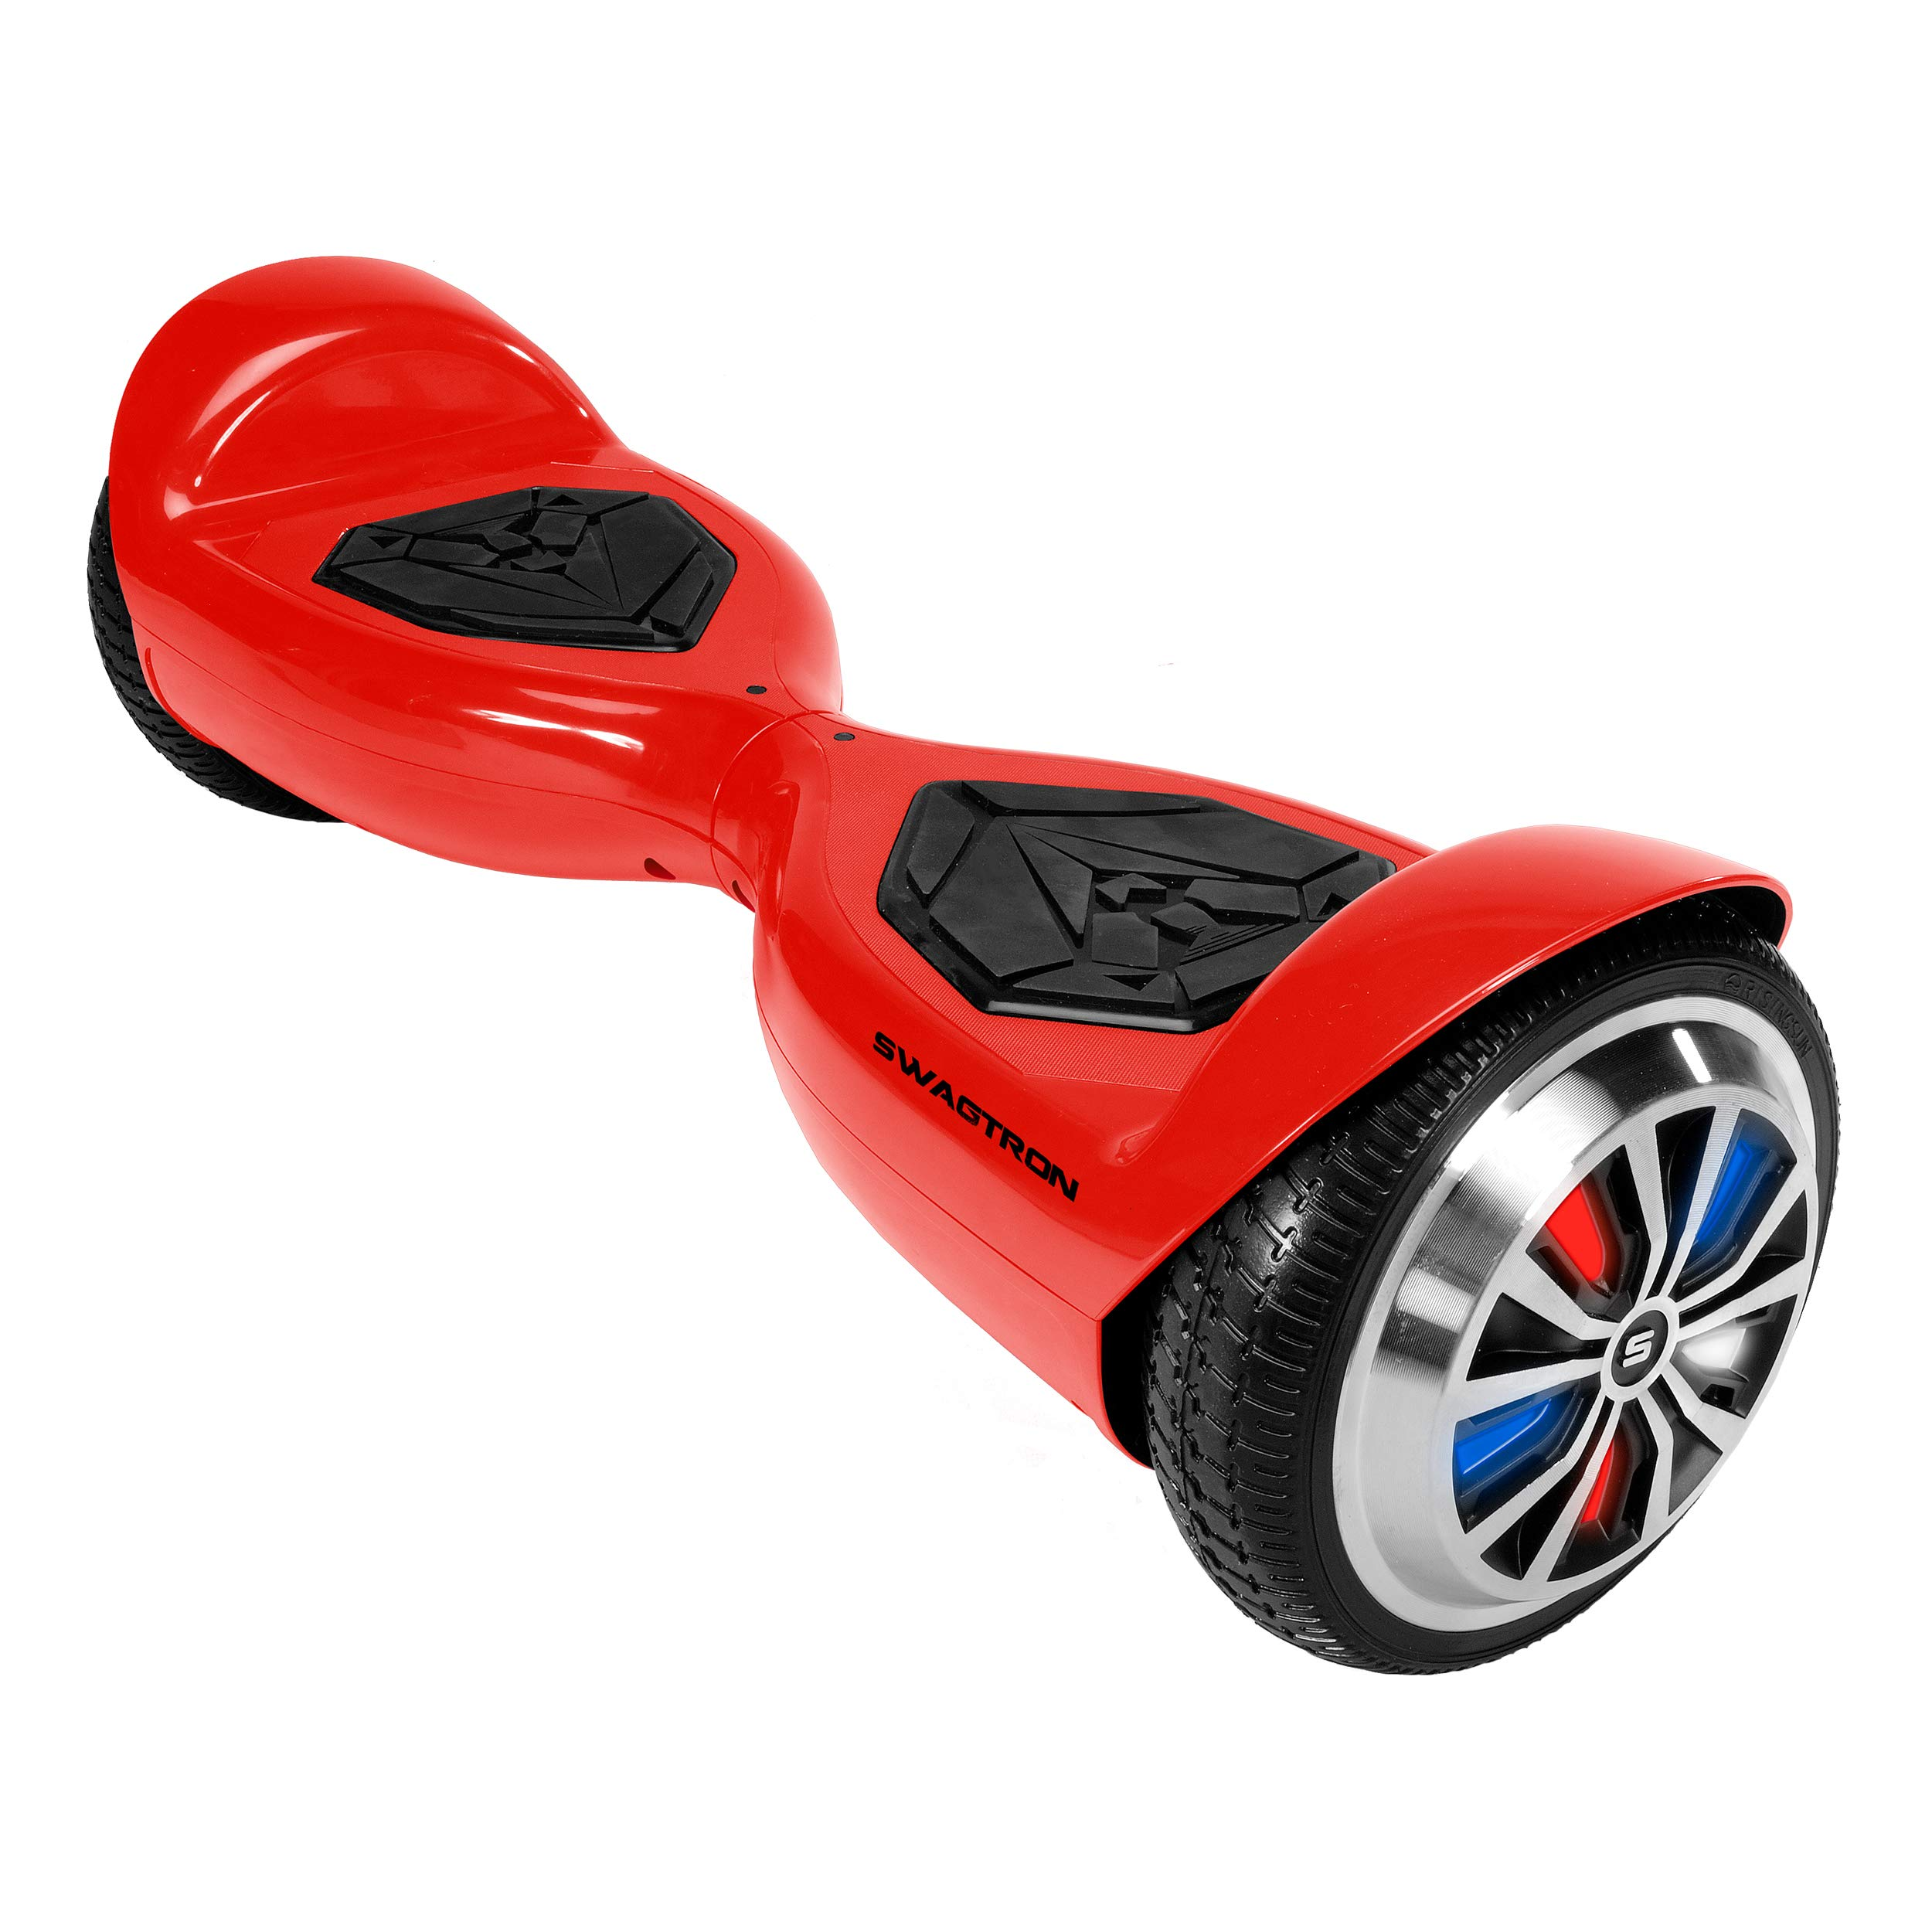 Swagtron Swagboard Hoverboard for Kids and Young Adults; Optional Learning Mode; Patented Battery Protection (Red with LEDs)